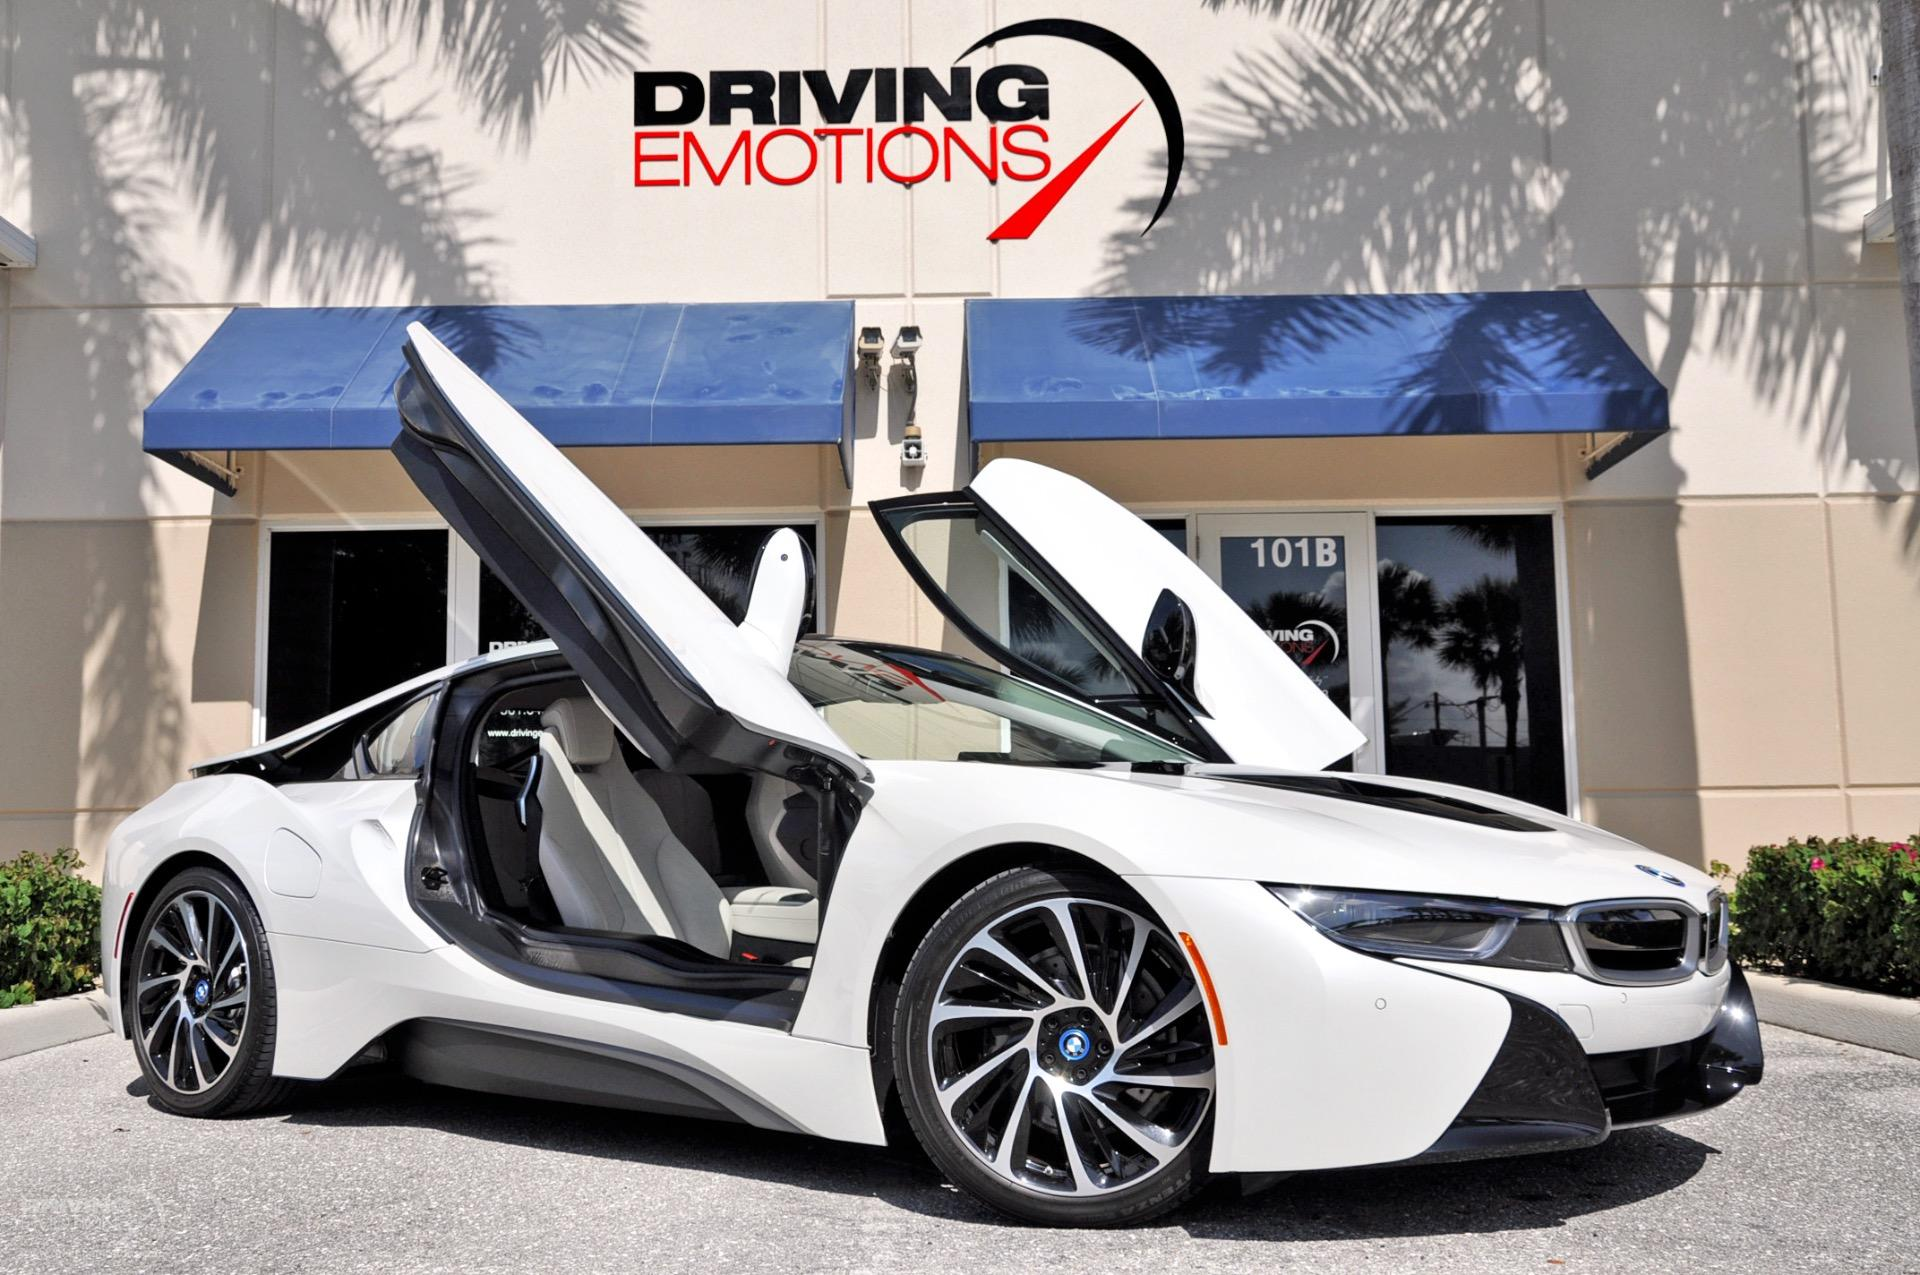 2015 Bmw I8 Giga World Stock 6043 For Sale Near Lake Park Fl Fl